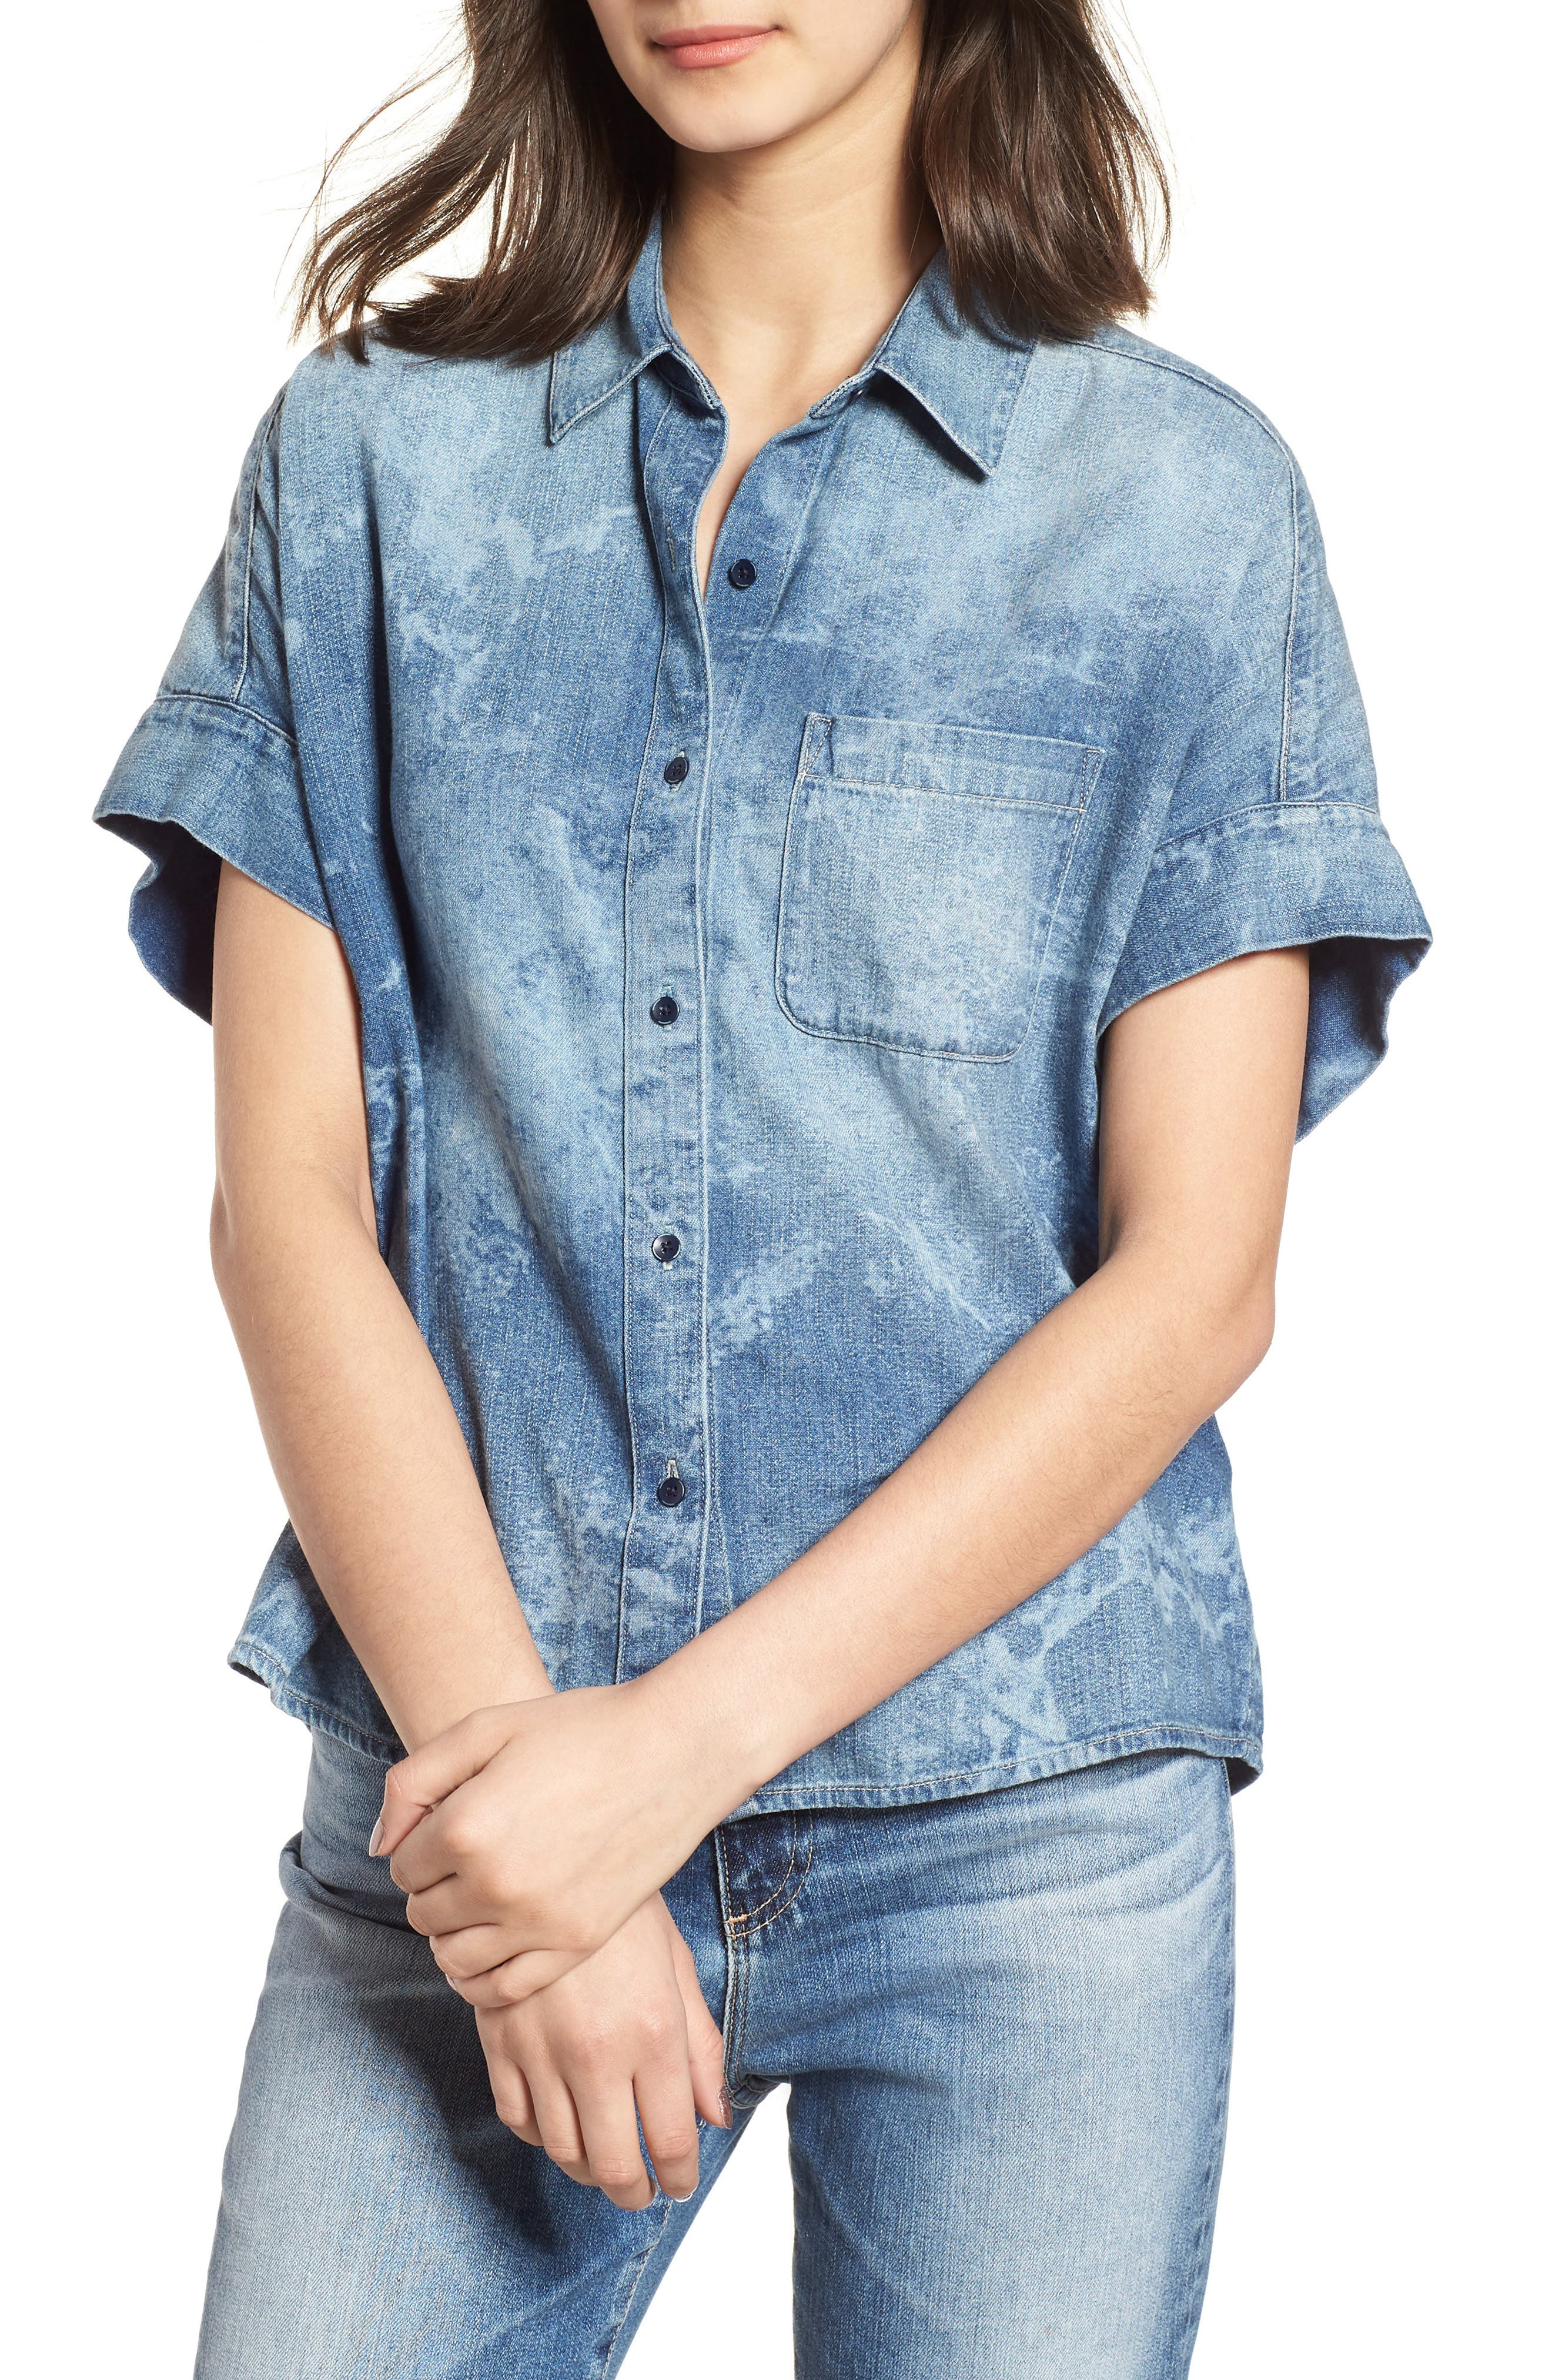 Hadley Denim Shirt,                             Main thumbnail 1, color,                             SUBLIME